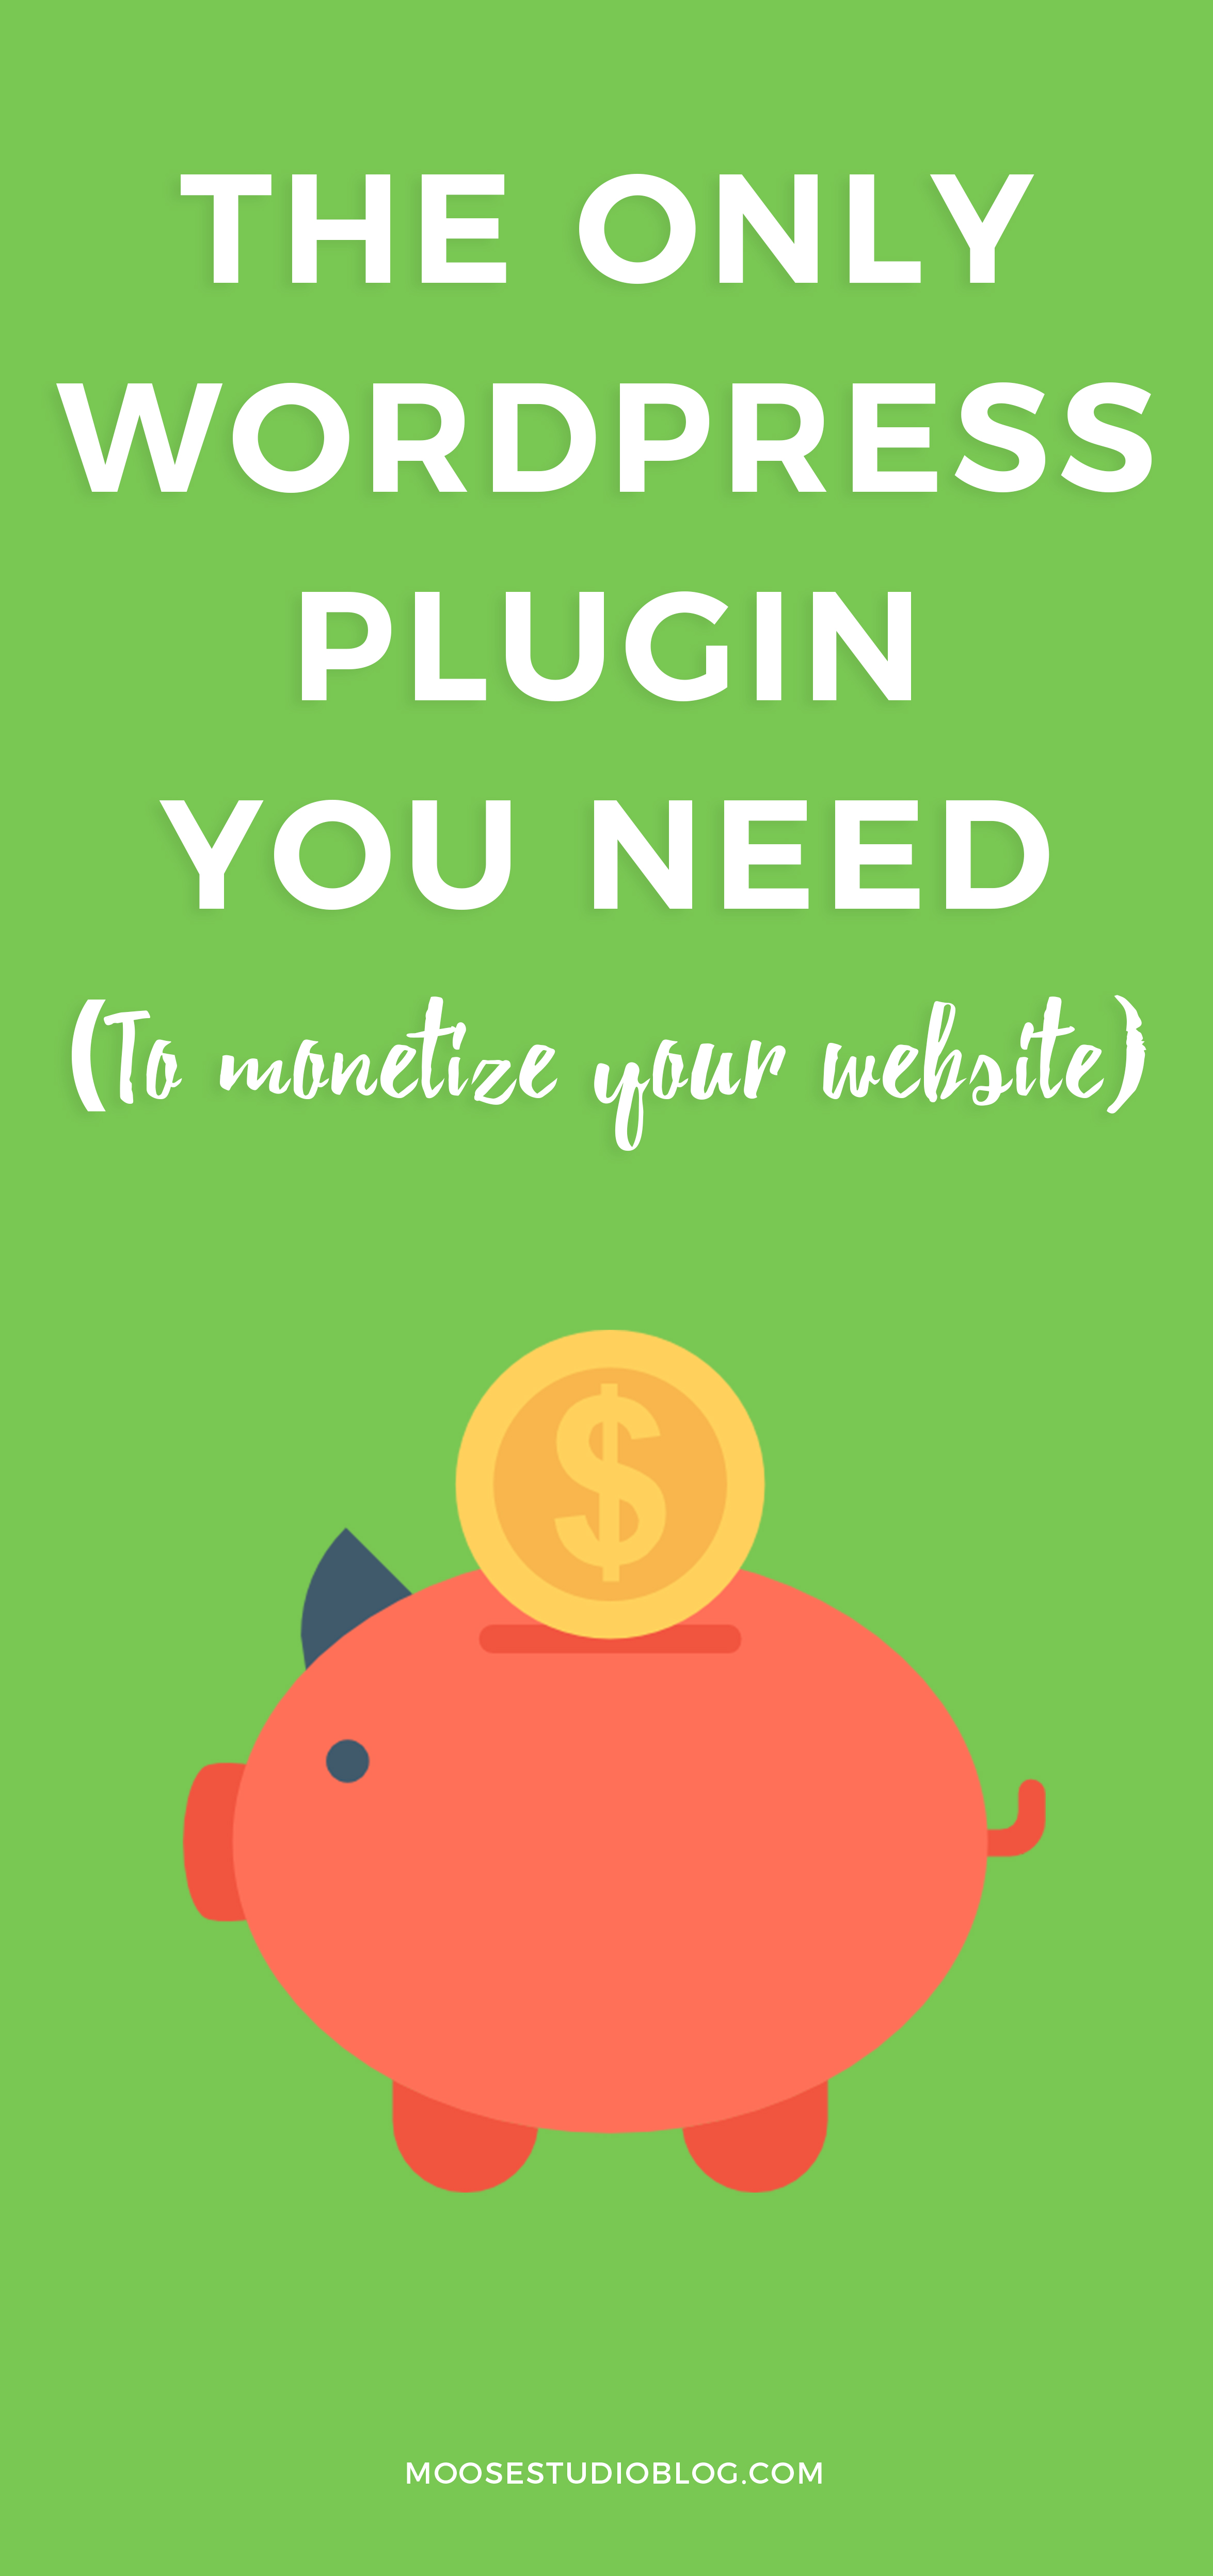 How To Easily Monetize Your Website With Only One WordPress Plugin